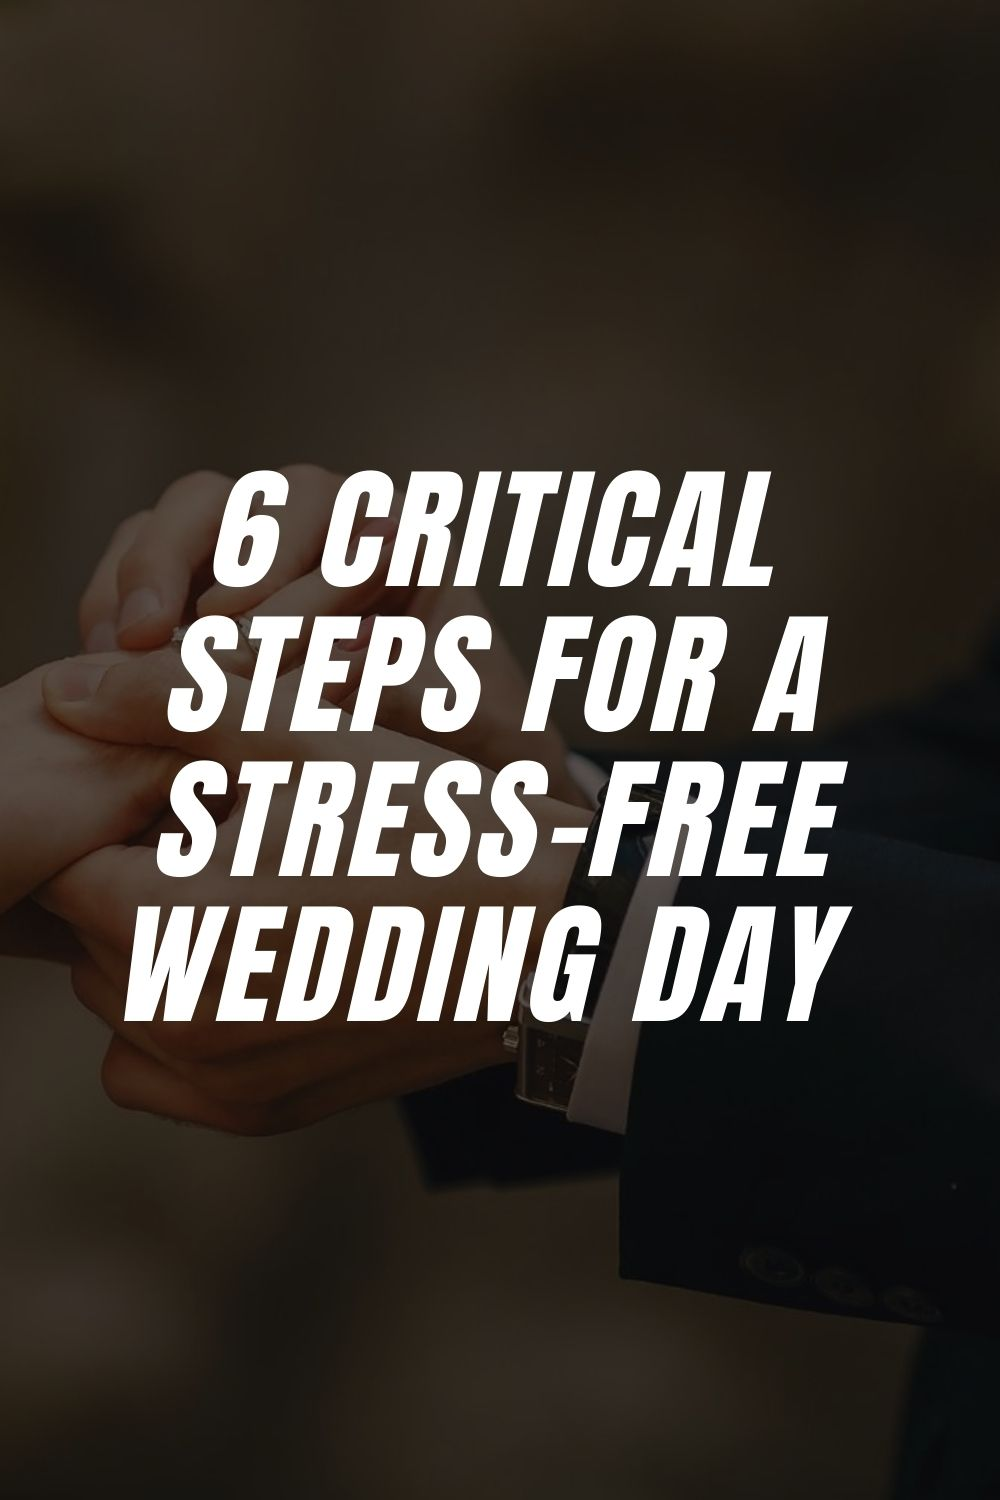 6 Critical Steps For A Stress-Free Wedding Day